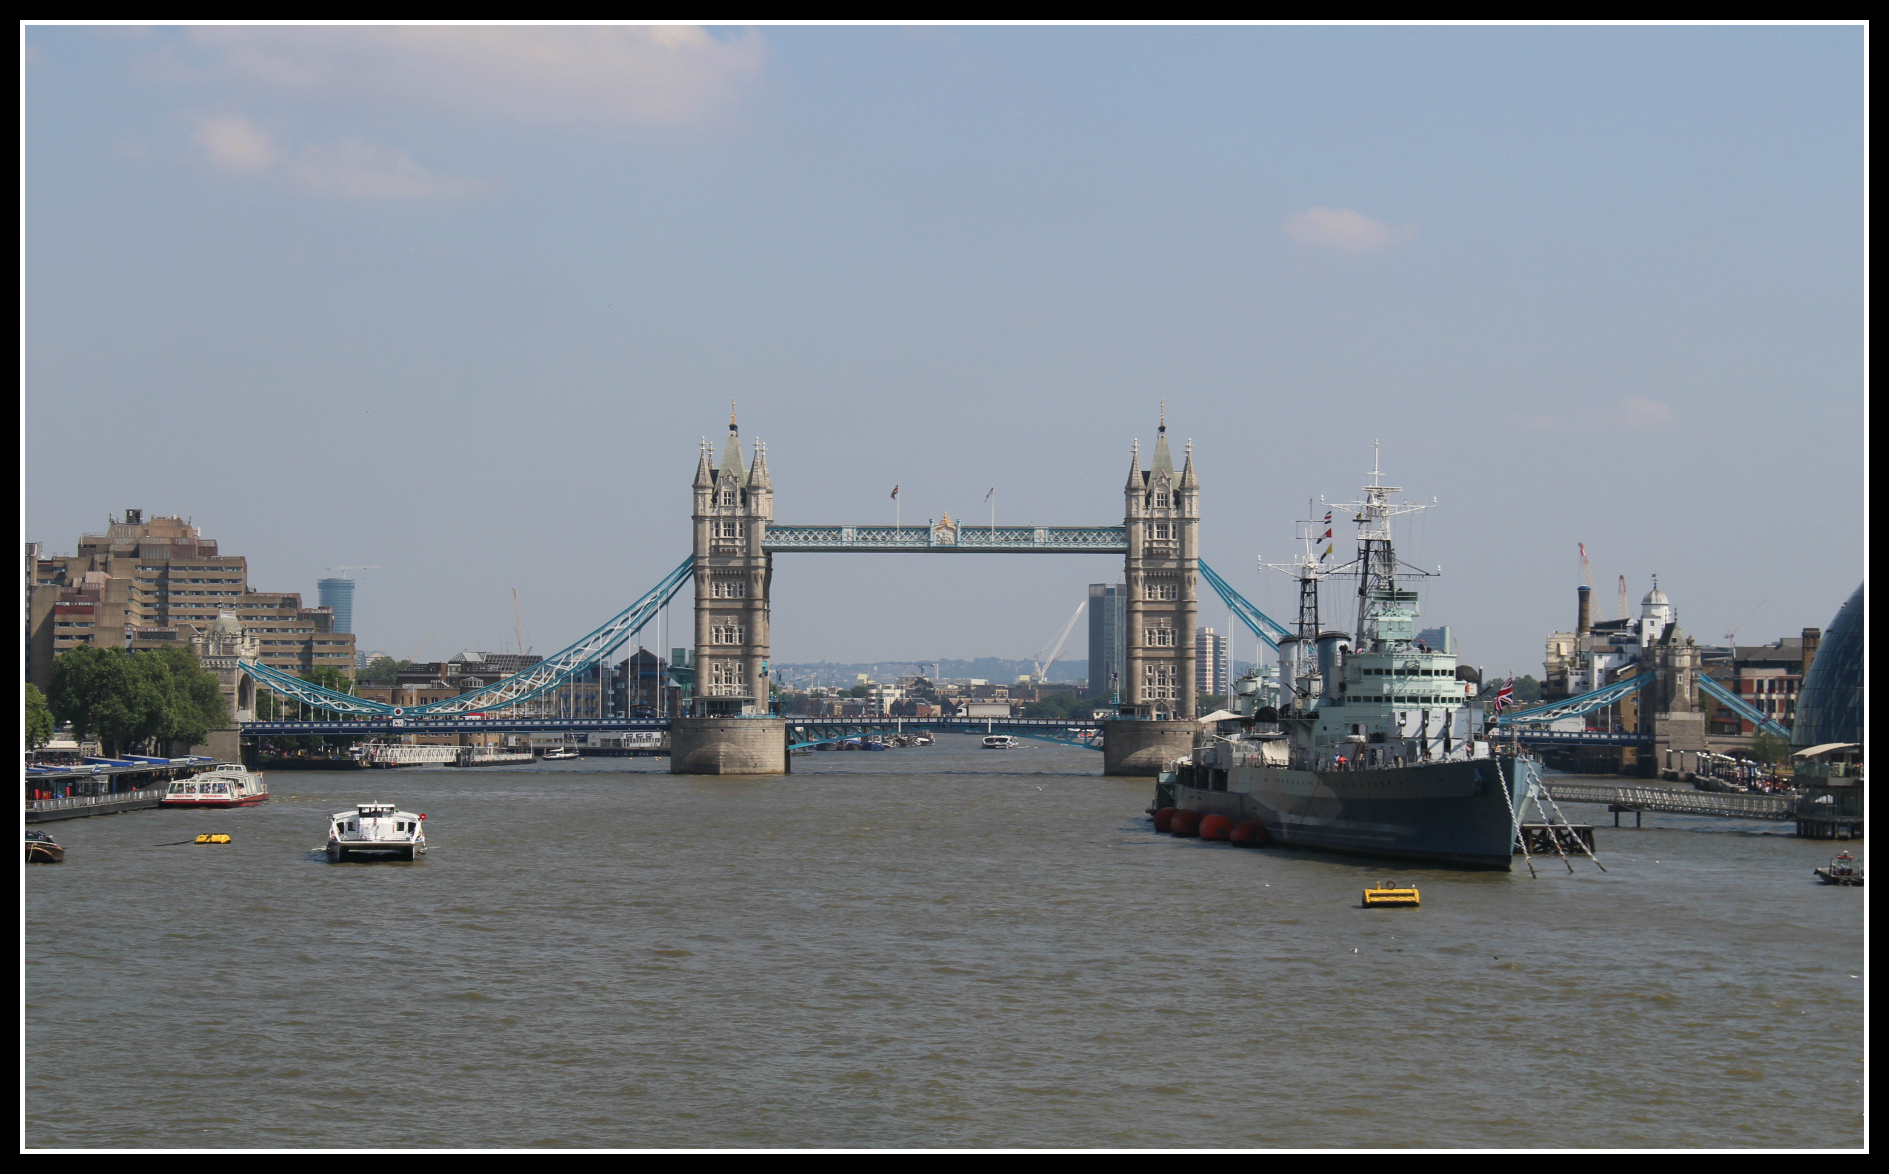 The River Thames on a sunny day